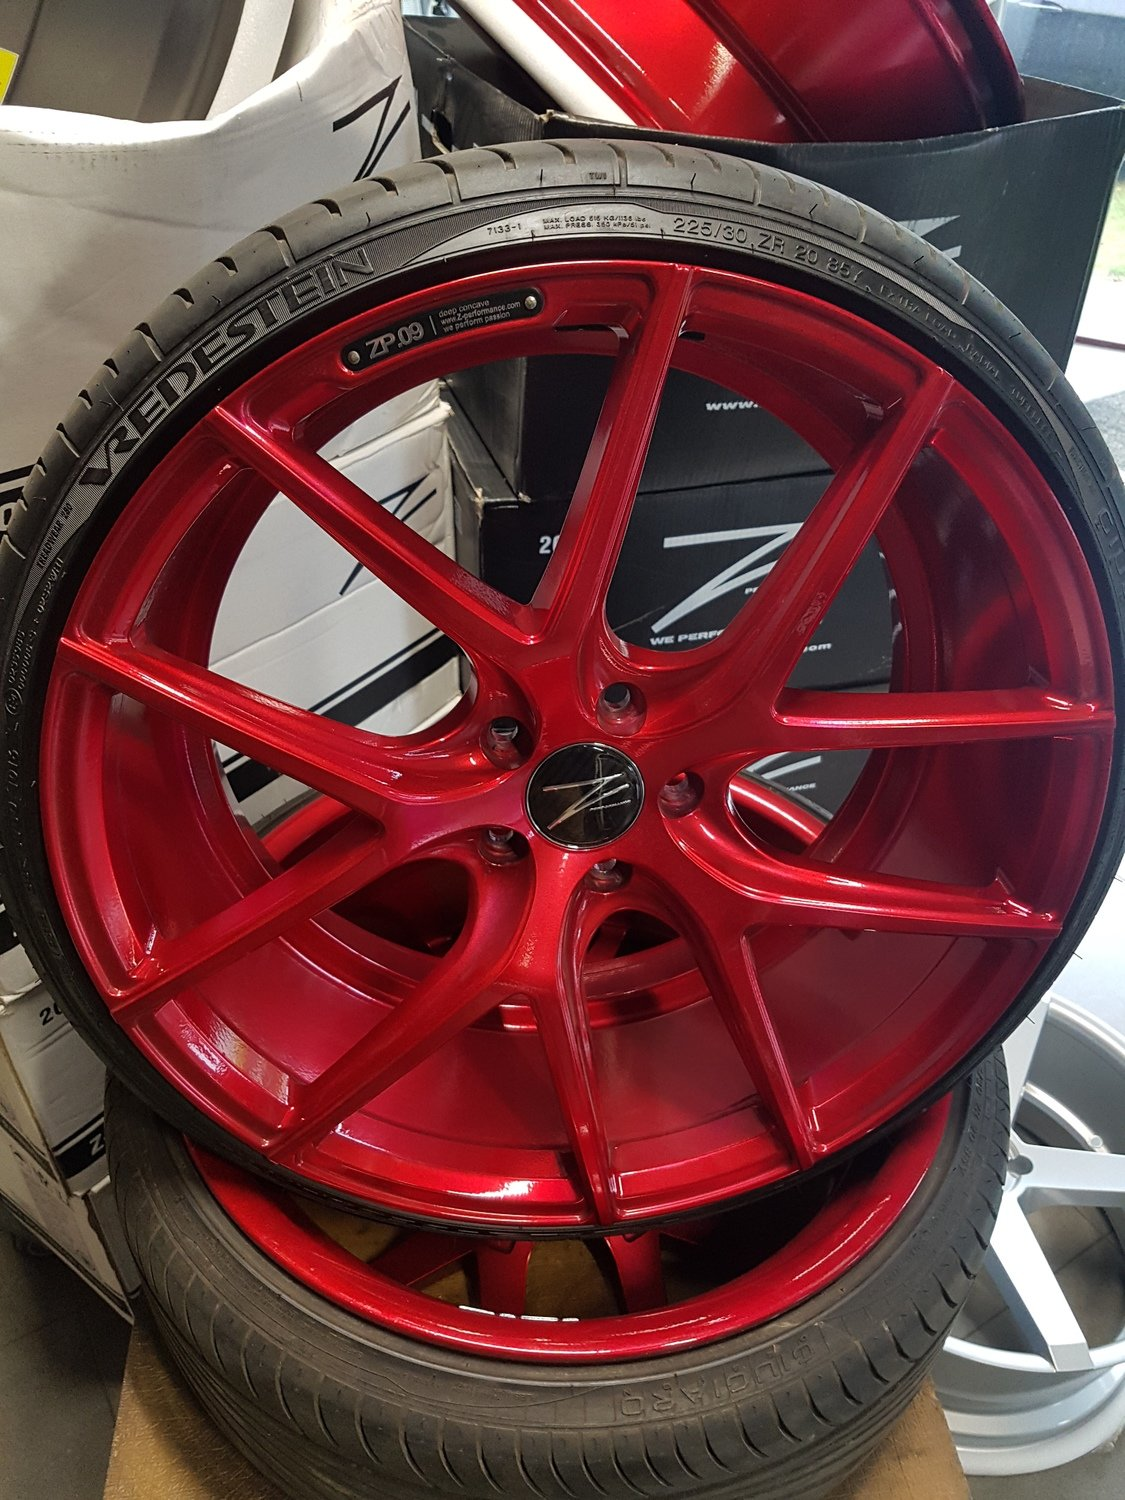 DEMO setje ZP.09 5x112 8,5x20 Et45 Candy red incl 225/30-20 Vredestein Sessanta banden